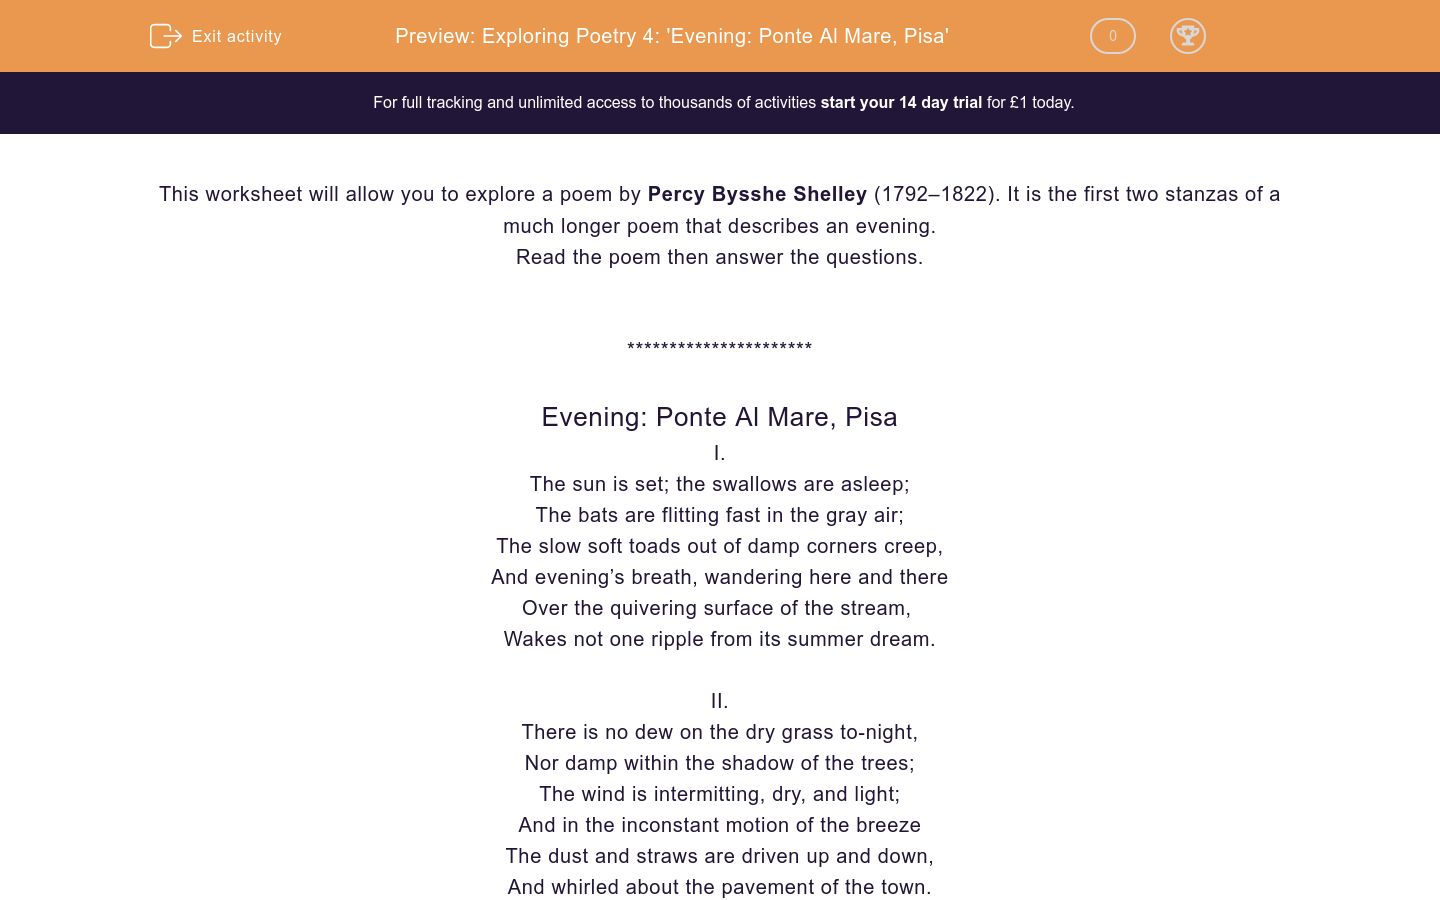 'Exploring Poetry 4: 'Evening: Ponte Al Mare, Pisa'' worksheet